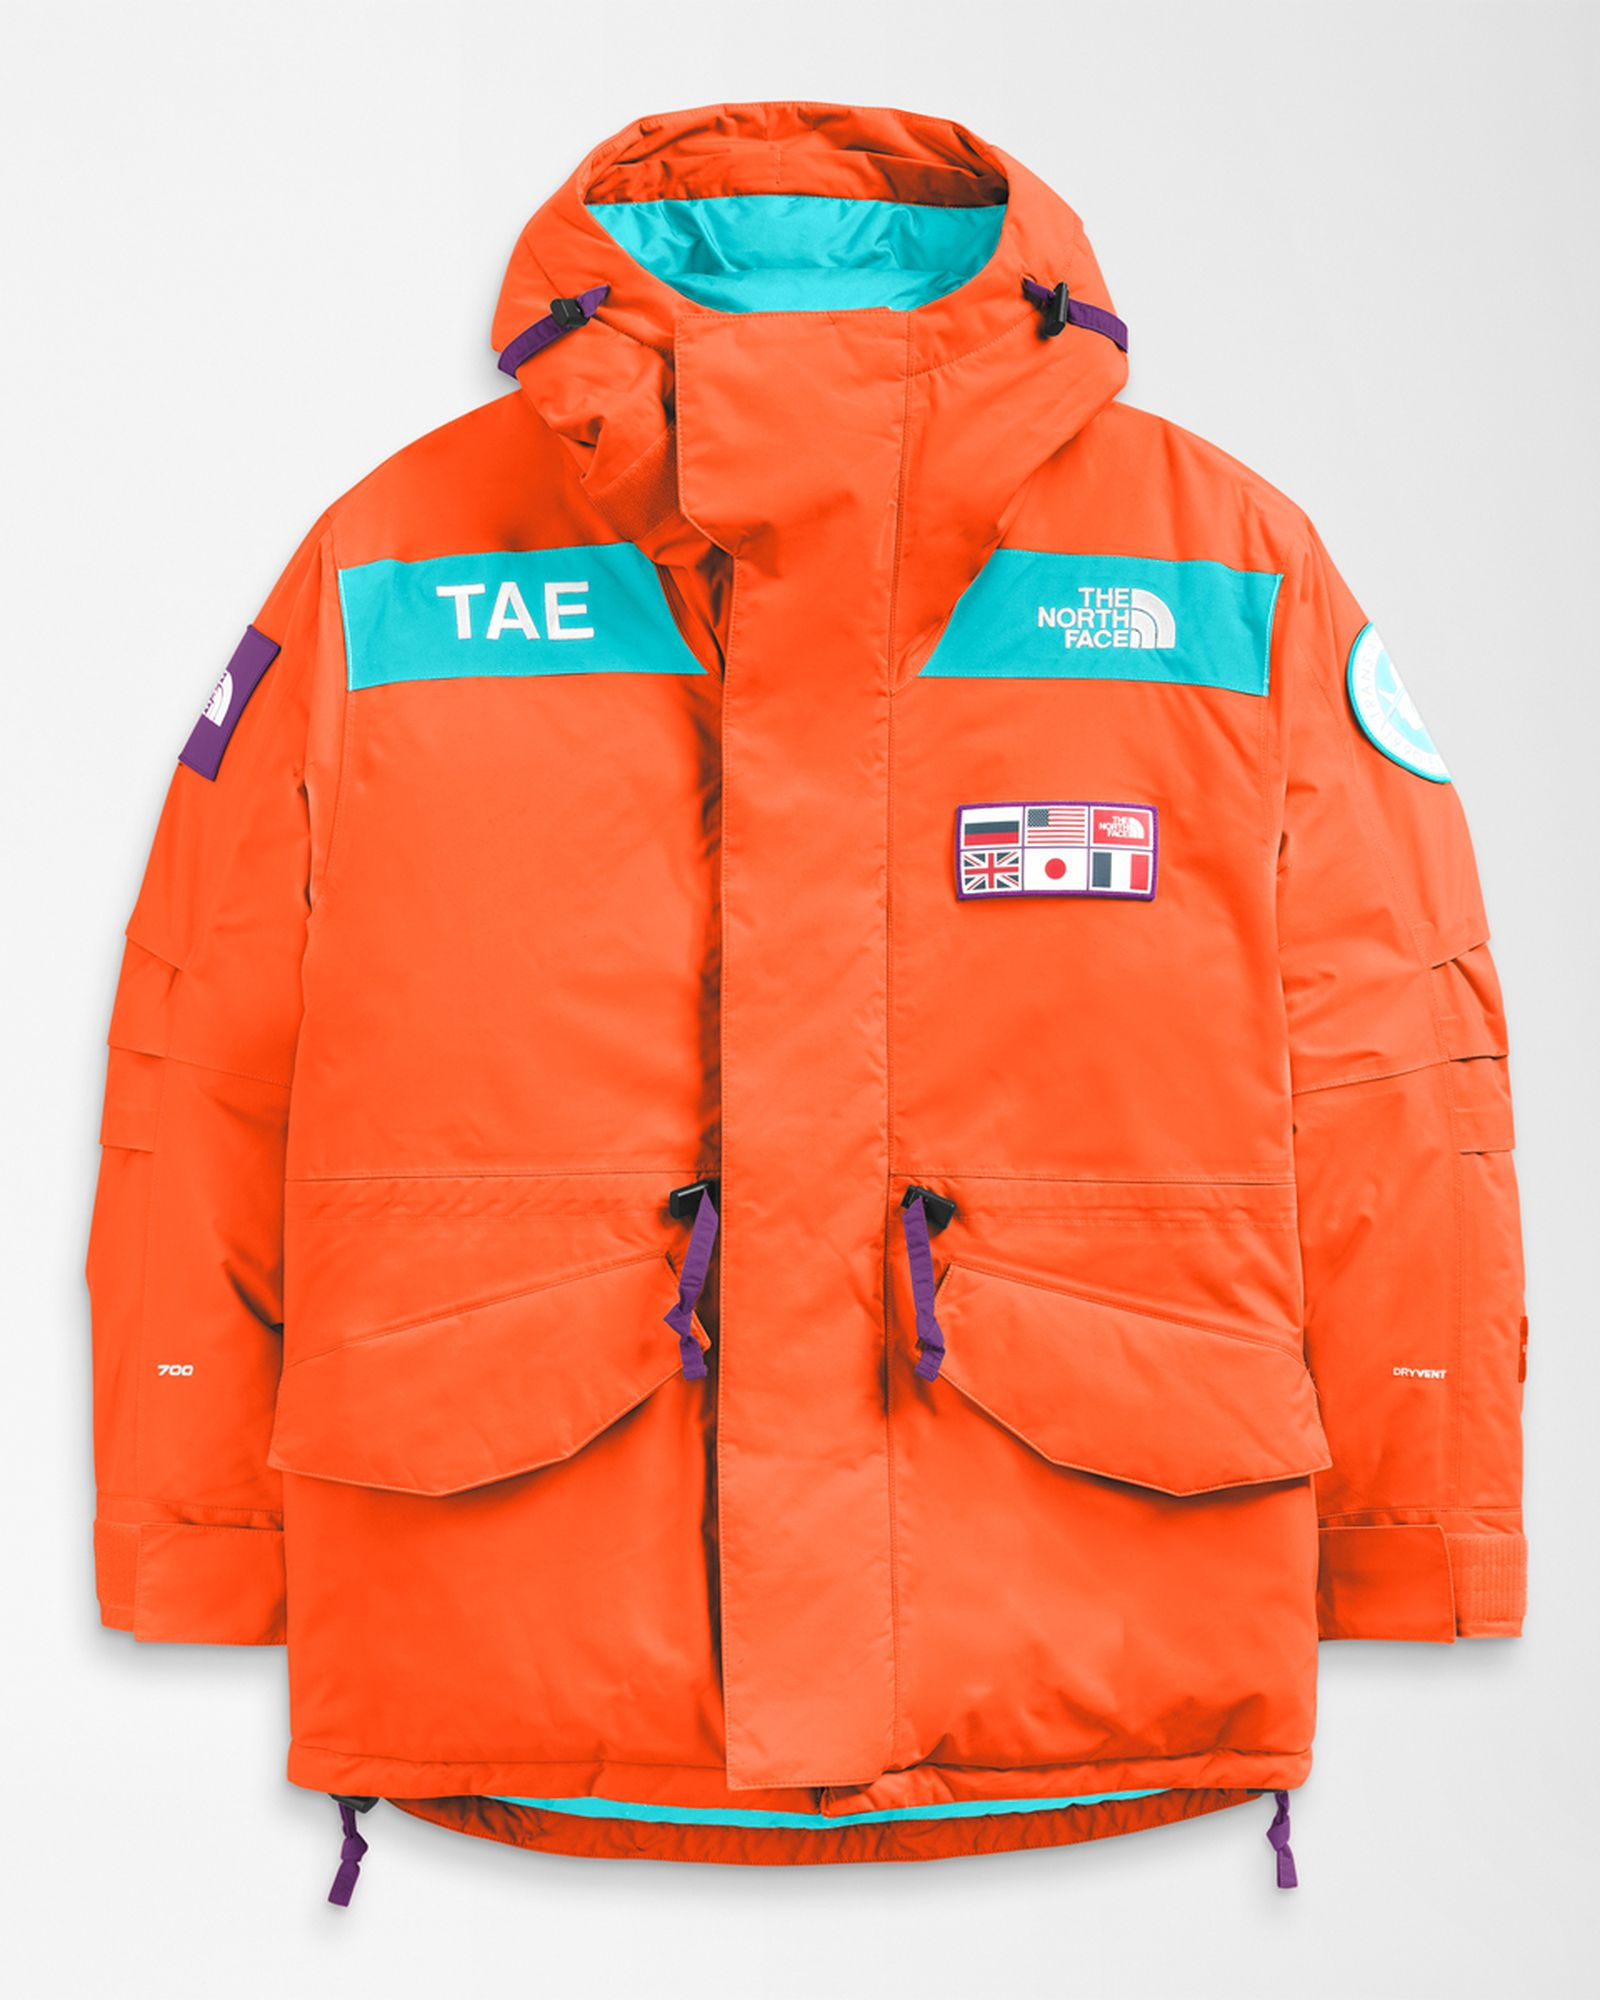 the-north-face-trans-antarctica-collection (12)